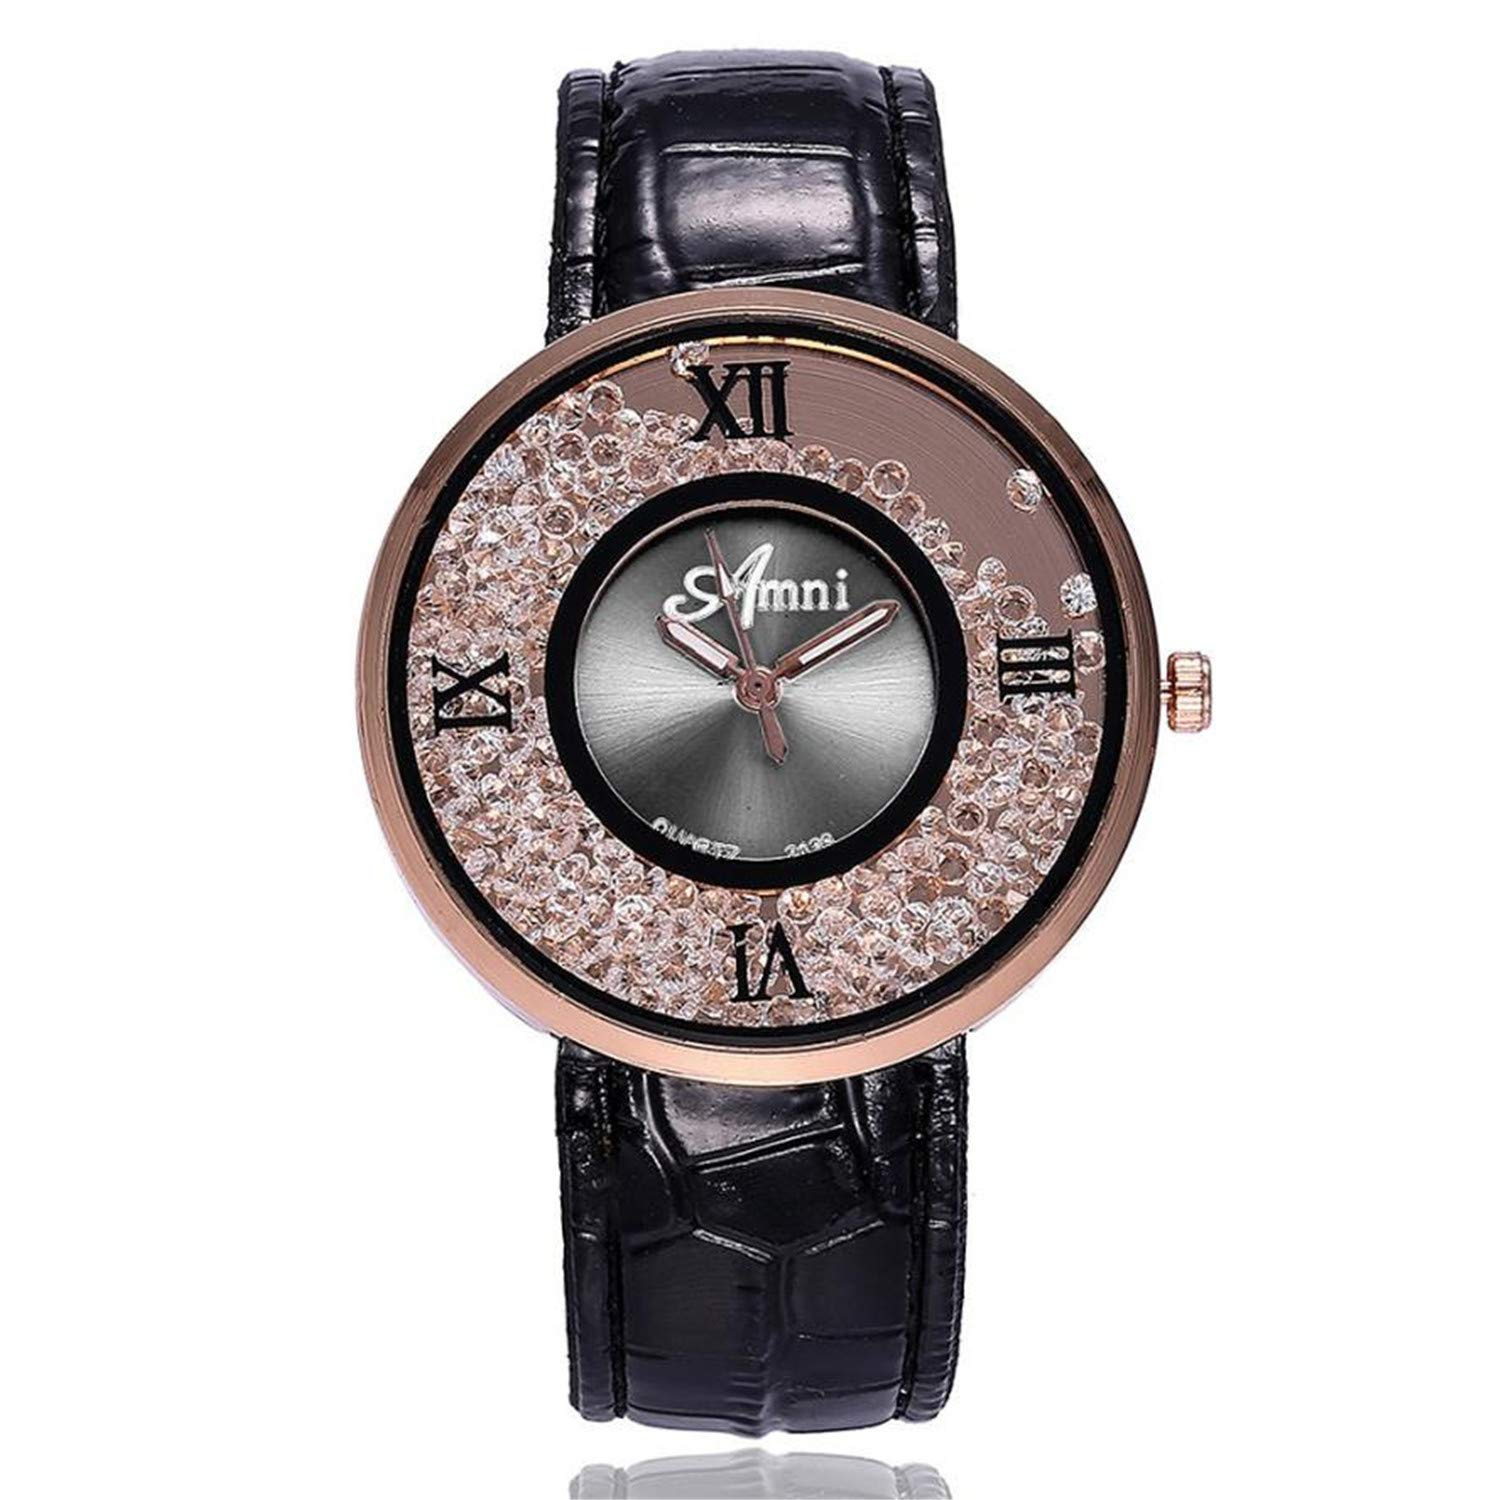 Amazon.com : naivety Women Fashion Quicksand Bead Watches Casual Ladies Dress Rhinestone Dial Leather Analog Quartz Wrist Watches Relojes para Mujer(Black, ...